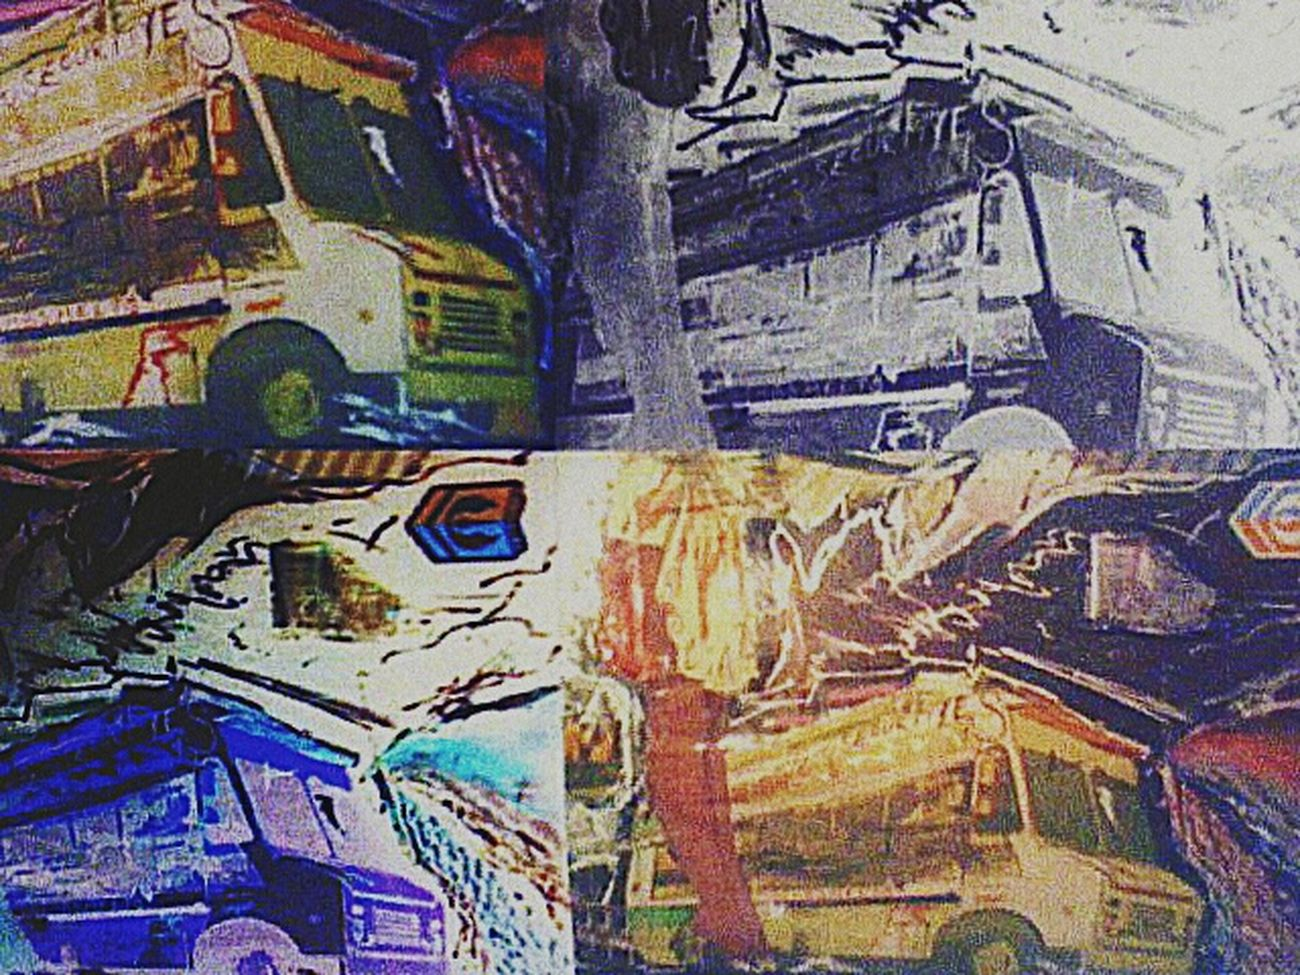 My Artwork My Art Digitizing Quadra Collage DaBombMeatPies Negative Art Negative Effect Work, Waitress, Food Service, You've Been Served